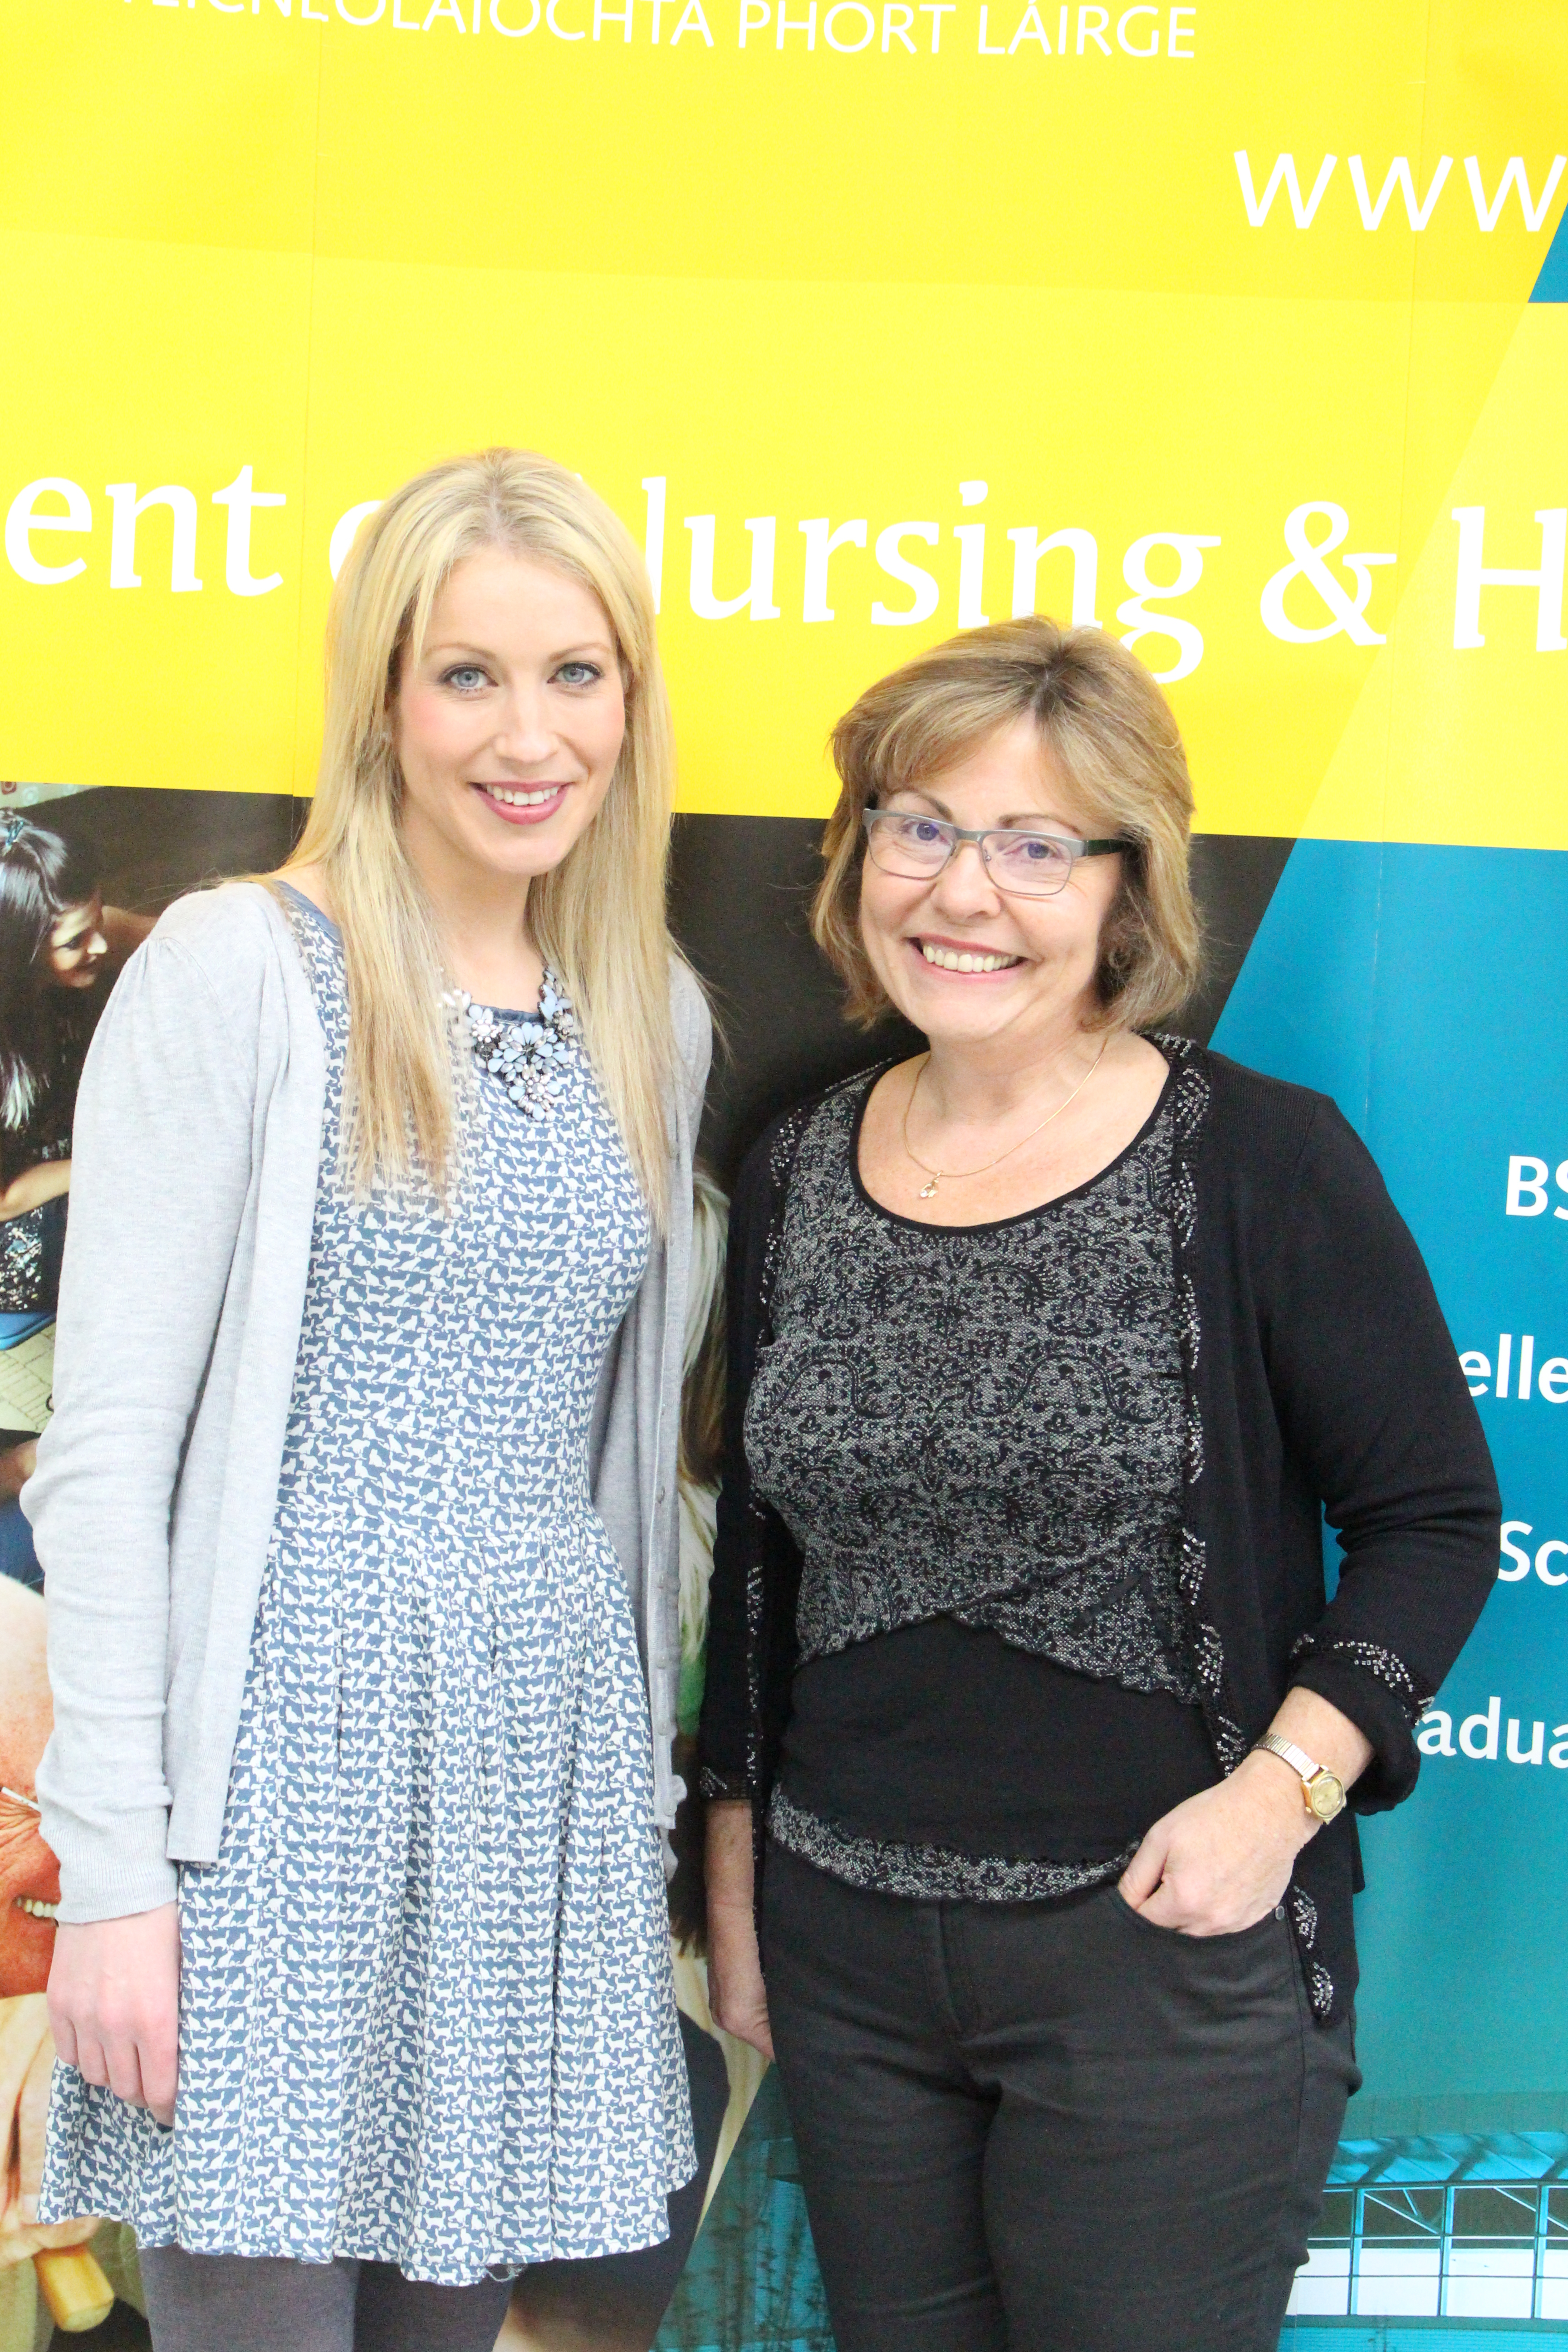 Ms Dawn Smyth and Dr Paula Lane, Lecturer, Department of Nursing and Applied healthcare, School of Health Sciences